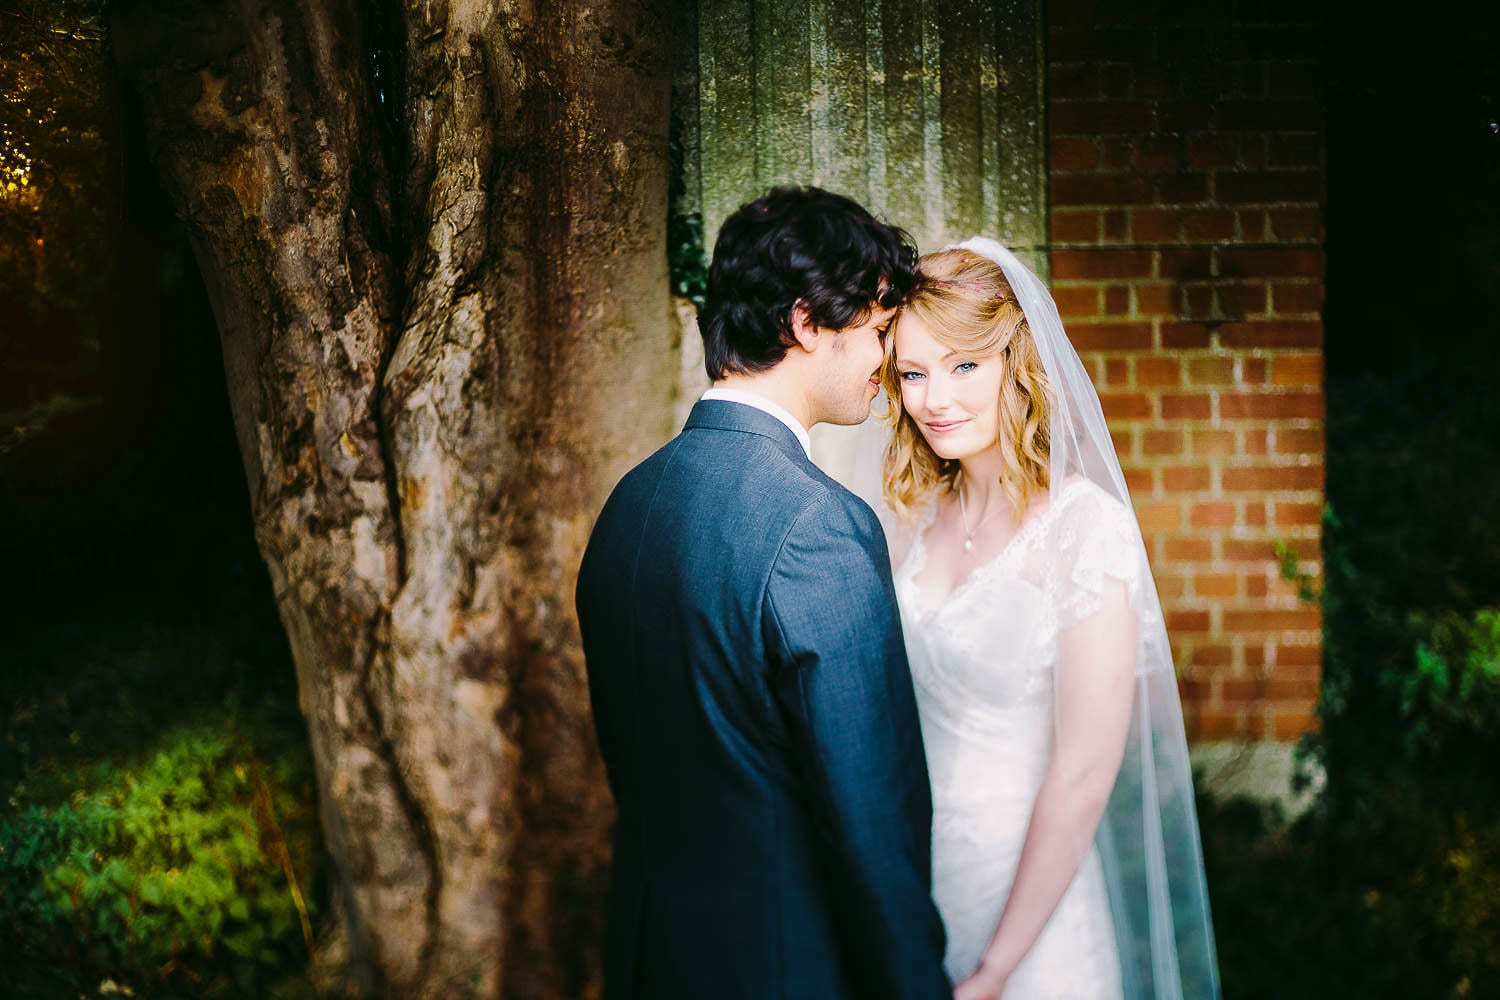 A portrait of the bride and groom at Kings Weston House